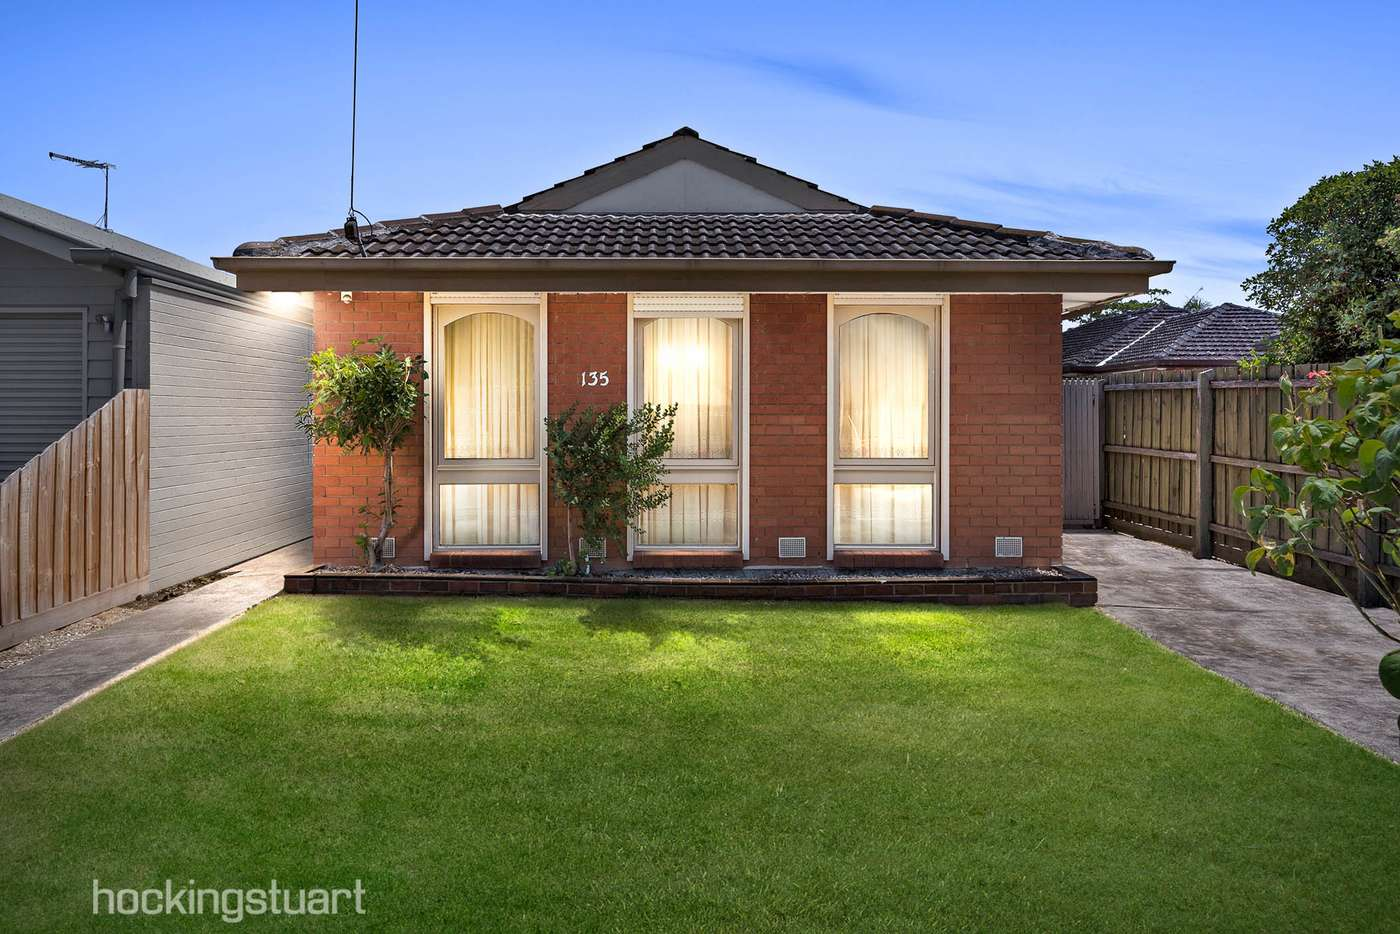 Main view of Homely house listing, 135 Aitken Street, Williamstown VIC 3016